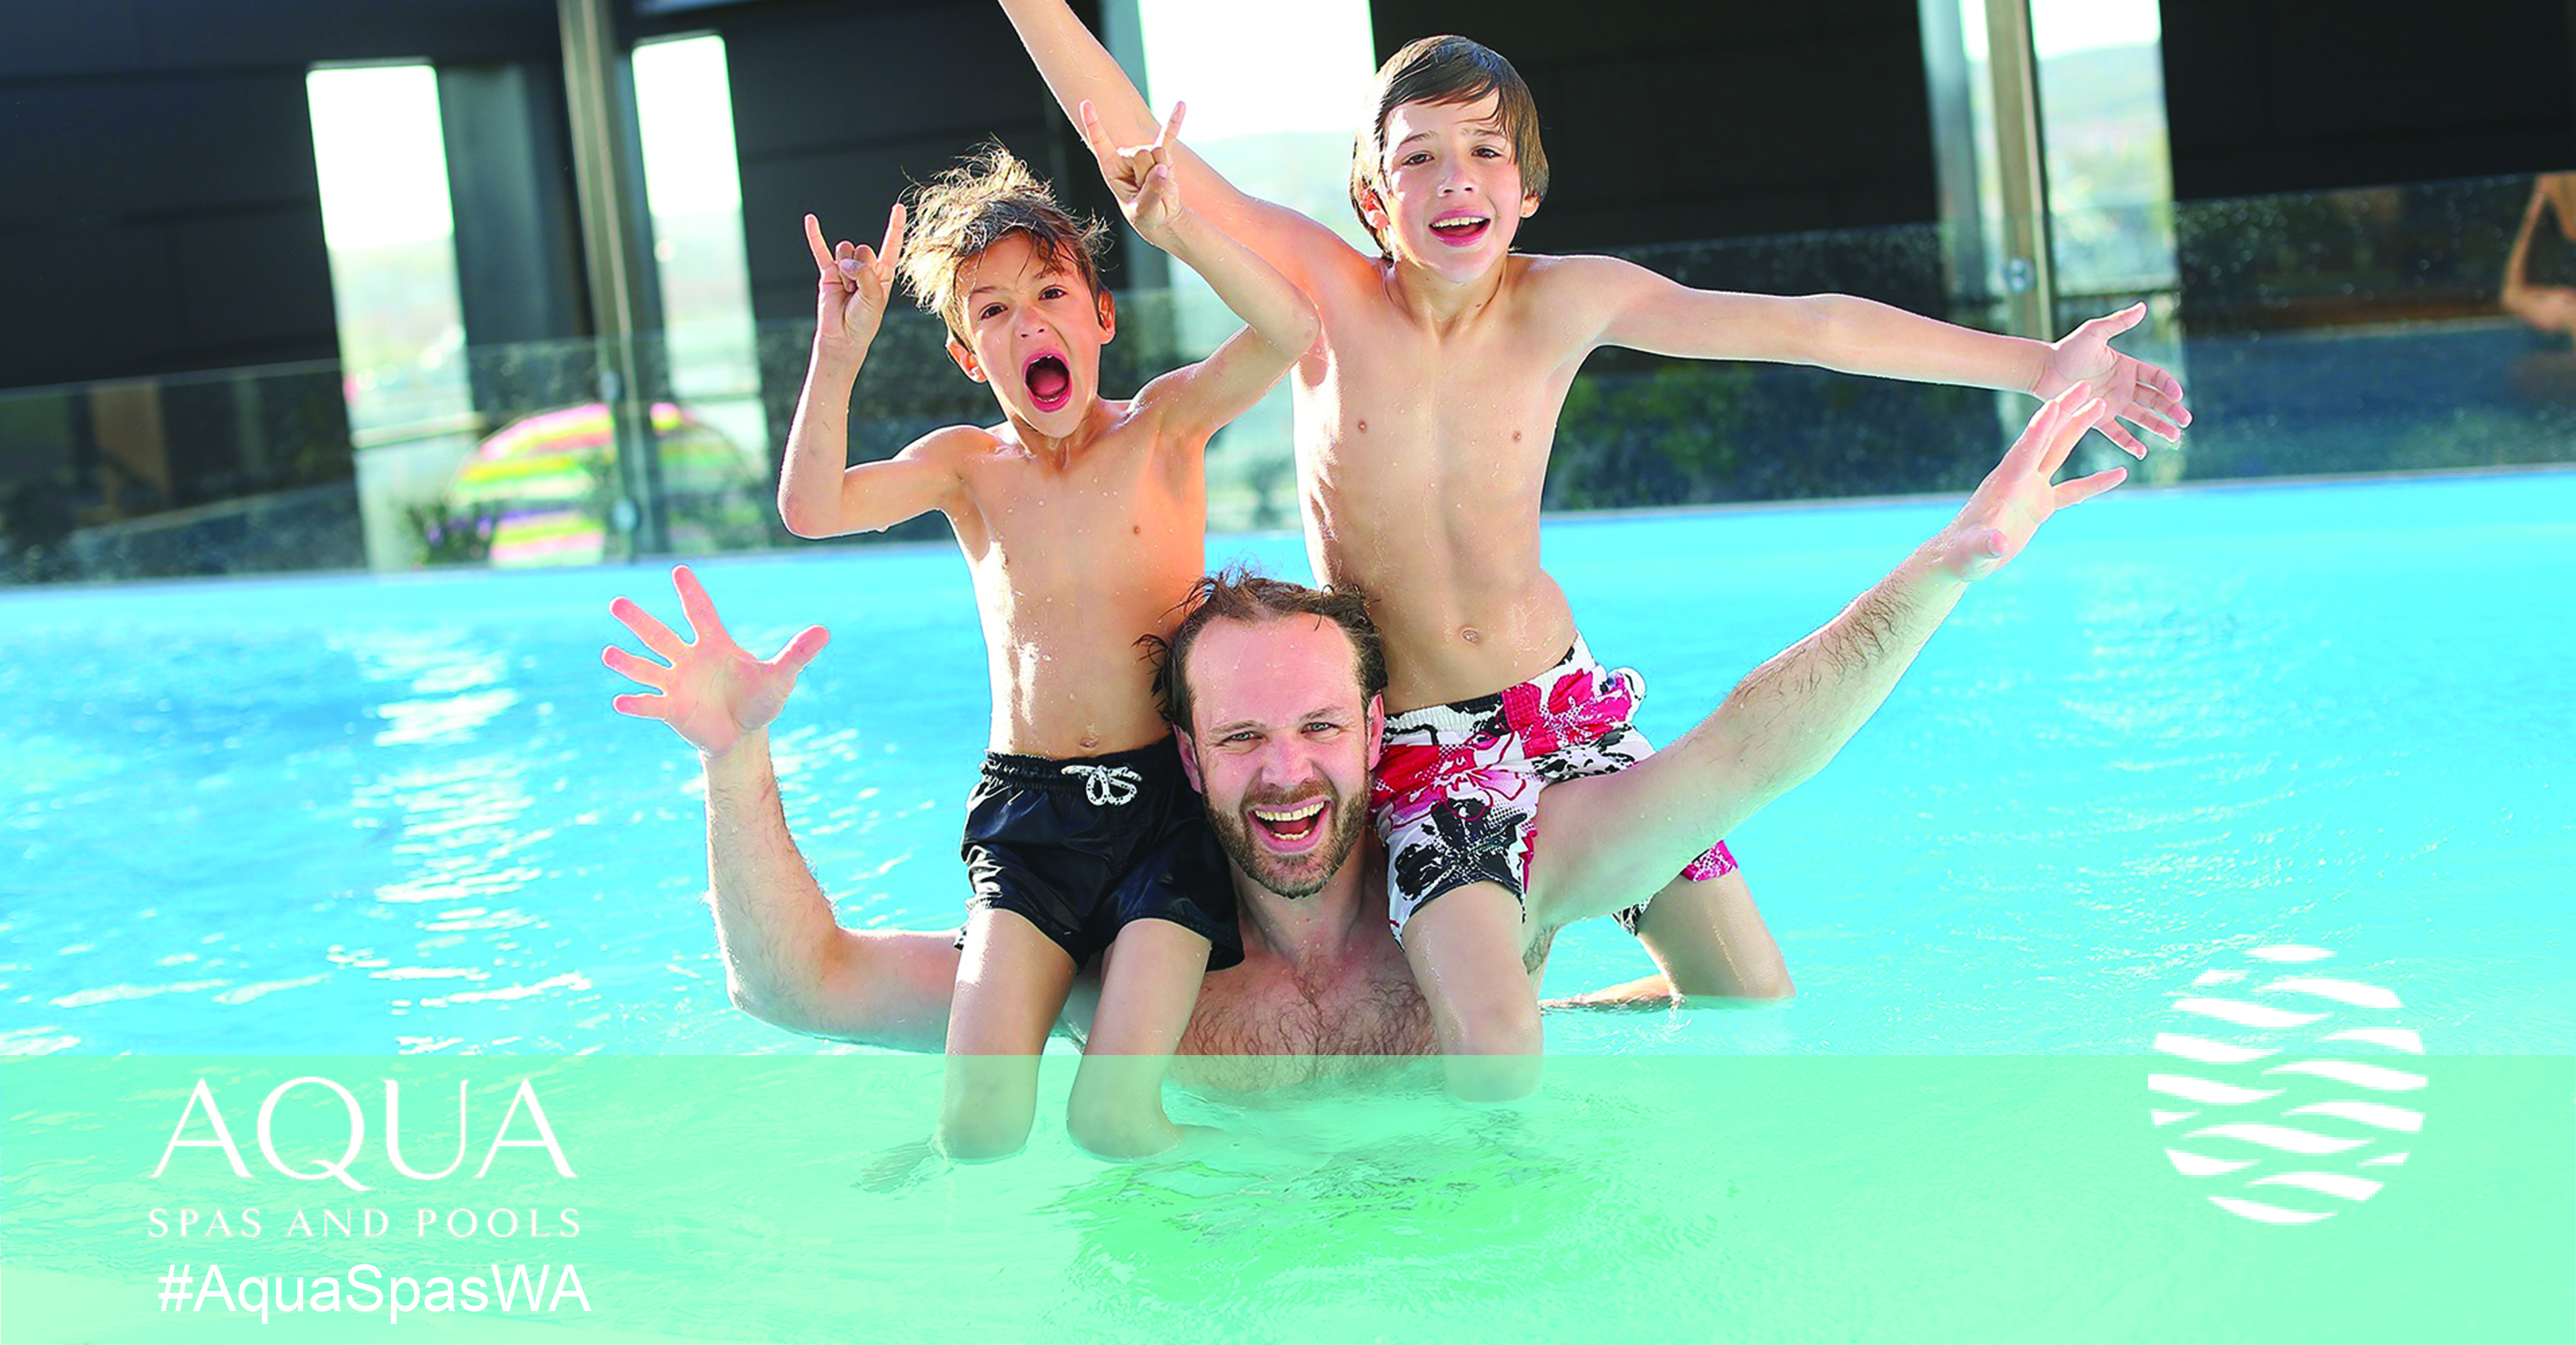 Family pool fun | Aqua Spas and Pool